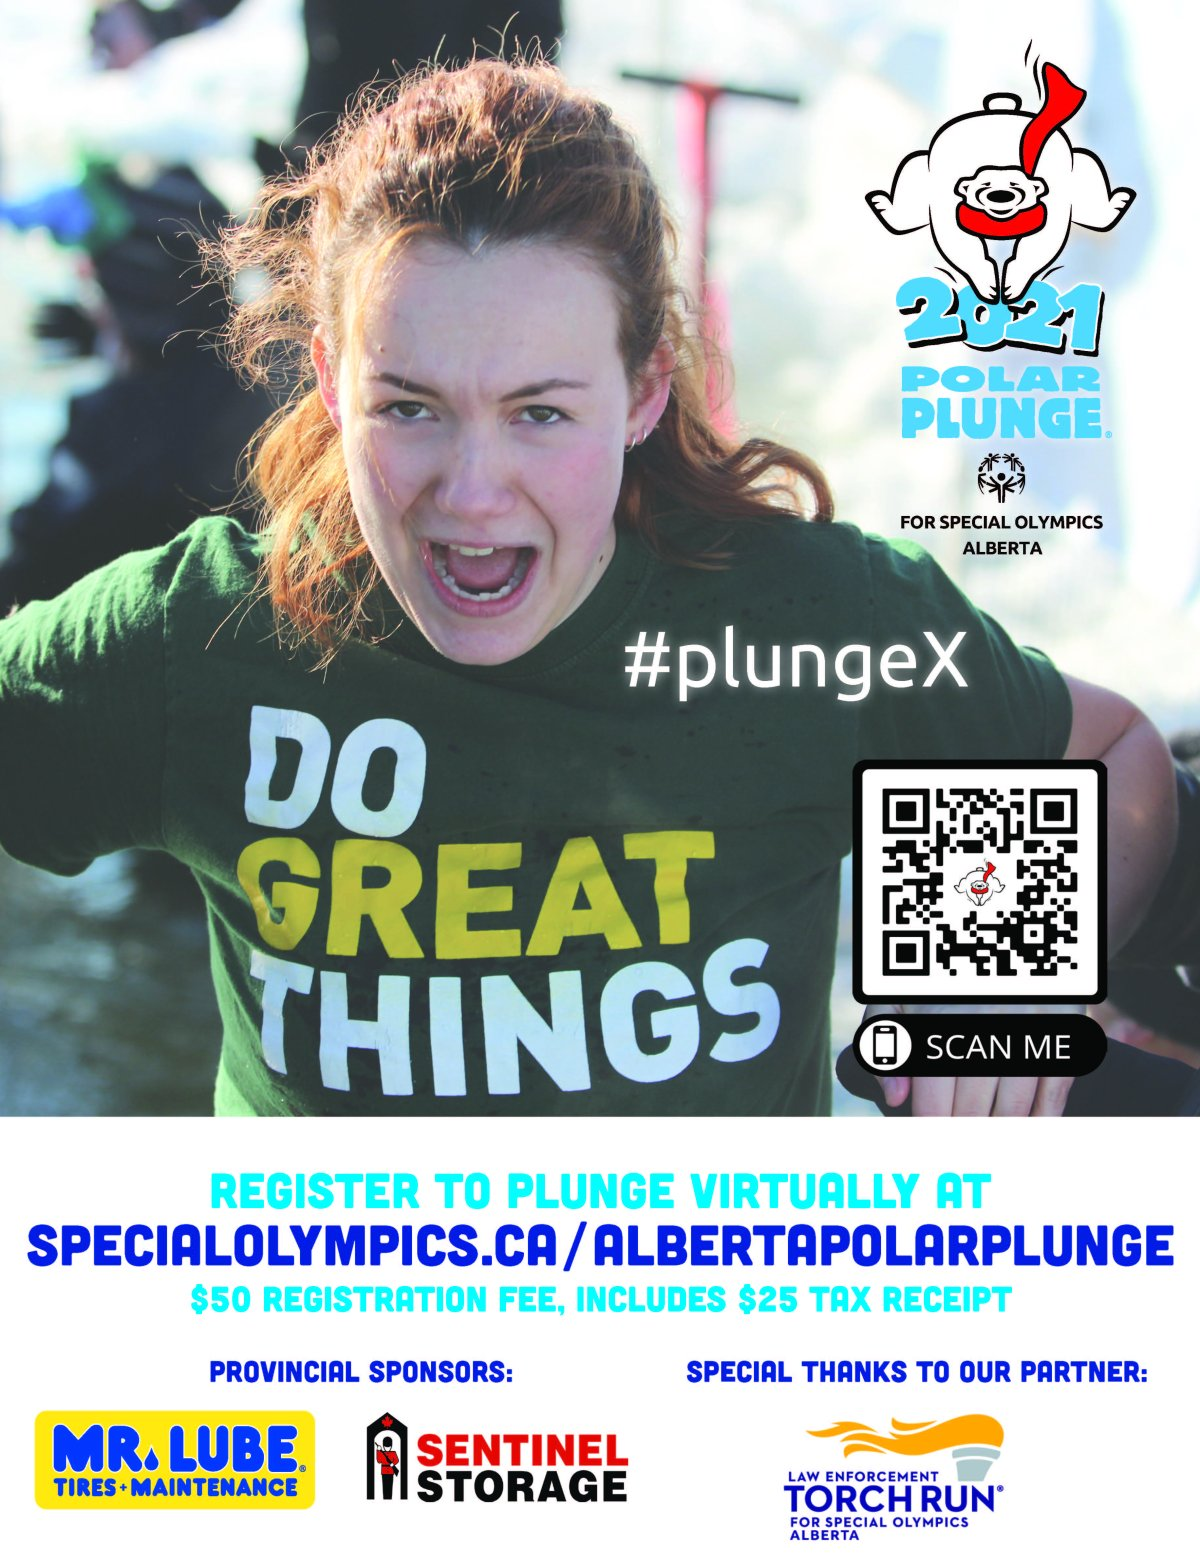 POLAR PLUNGE IS BACK FOR 2021! You can once again take the Plunge in Alberta in support of Special Olympics Alberta – only VIRTUALLY! The Polar Plunge, presented by the Law Enforcement Torch Run, challenges ANYONE to bravely participate in this exciting and accessible fundraiser, while helping 140 communities across Alberta. It's a great way for everyone - individuals, organizations, and teams - to get involved in support of Special Olympics and show winter who's boss. SAFETY FIRST Safety has always been our highest priority with these events, and this year is no different. With the ever-changing restrictions and environment due to COVID-19, we are officially moving our Polar Plunge celebrations to a virtual space, which is the safest option for us all! No fear though, as that just means we can all participate from the comfort of our homes in our pjs! PLUNGE OPTIONS We are so excited to be having a virtual plunge this year! It will not only provide an option for those isolating, but will also expand the reach of our event to all corners of the province – and beyond! While virtual events are plentiful these days, we have no doubt that the creativity will be flowing for all those that choose to participate. There are no restrictions as to how to get your plunge done – whether snow angels, cold buckets of water, or in a kiddie pool in your backyard, the opportunities are almost endless! Have some fun and get creative! Check out our FAQs for more information or email us at info@specialolympics.ab.ca with any additional questions. In recognition of our typical in-person celebrations, we'll be recognizing these locations on the following dates: January 31 - Edmonton February 6 - Lethbridge February 20 - Calgary March 6 - Red Deer March 13 - Medicine Hat WHAT'S IN IT FOR ME? Besides the pride you'll feel when you get #freezinforareason, you'll also deserve an extra pat on the back for helping out Special Olympics Alberta athletes during this long period of pause in their i